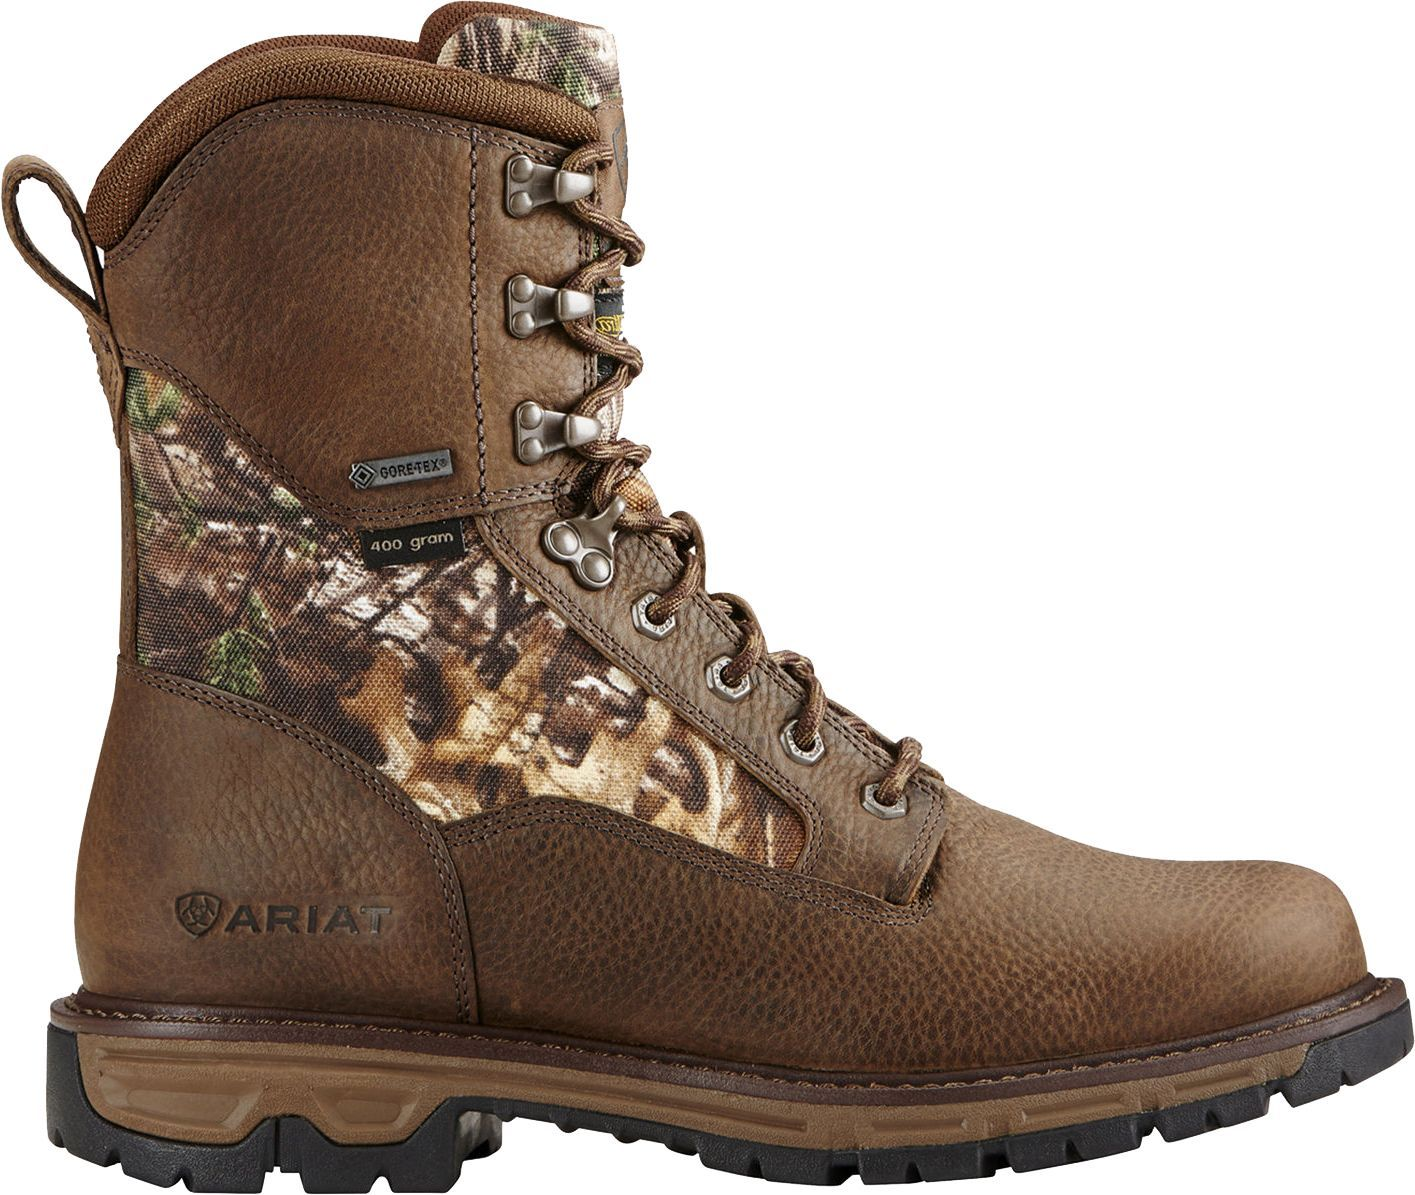 9bfcecc66a2 Ariat Men's Conquest Round Toe 8'' 400g GTX Hunting Boots | Products ...